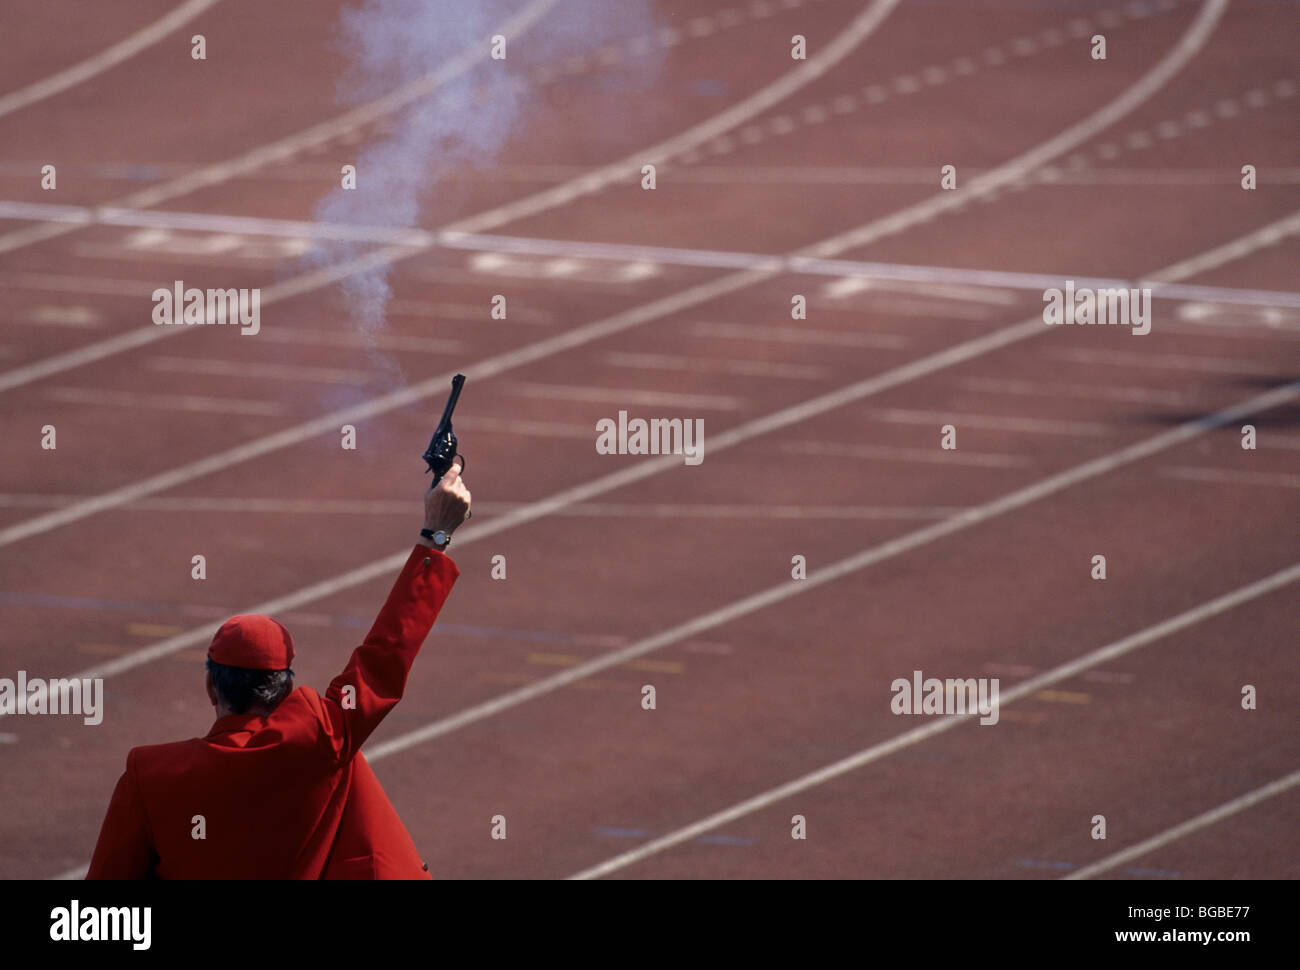 Official firing a starting gun on a track Stock Photo: 27297515 - Alamy